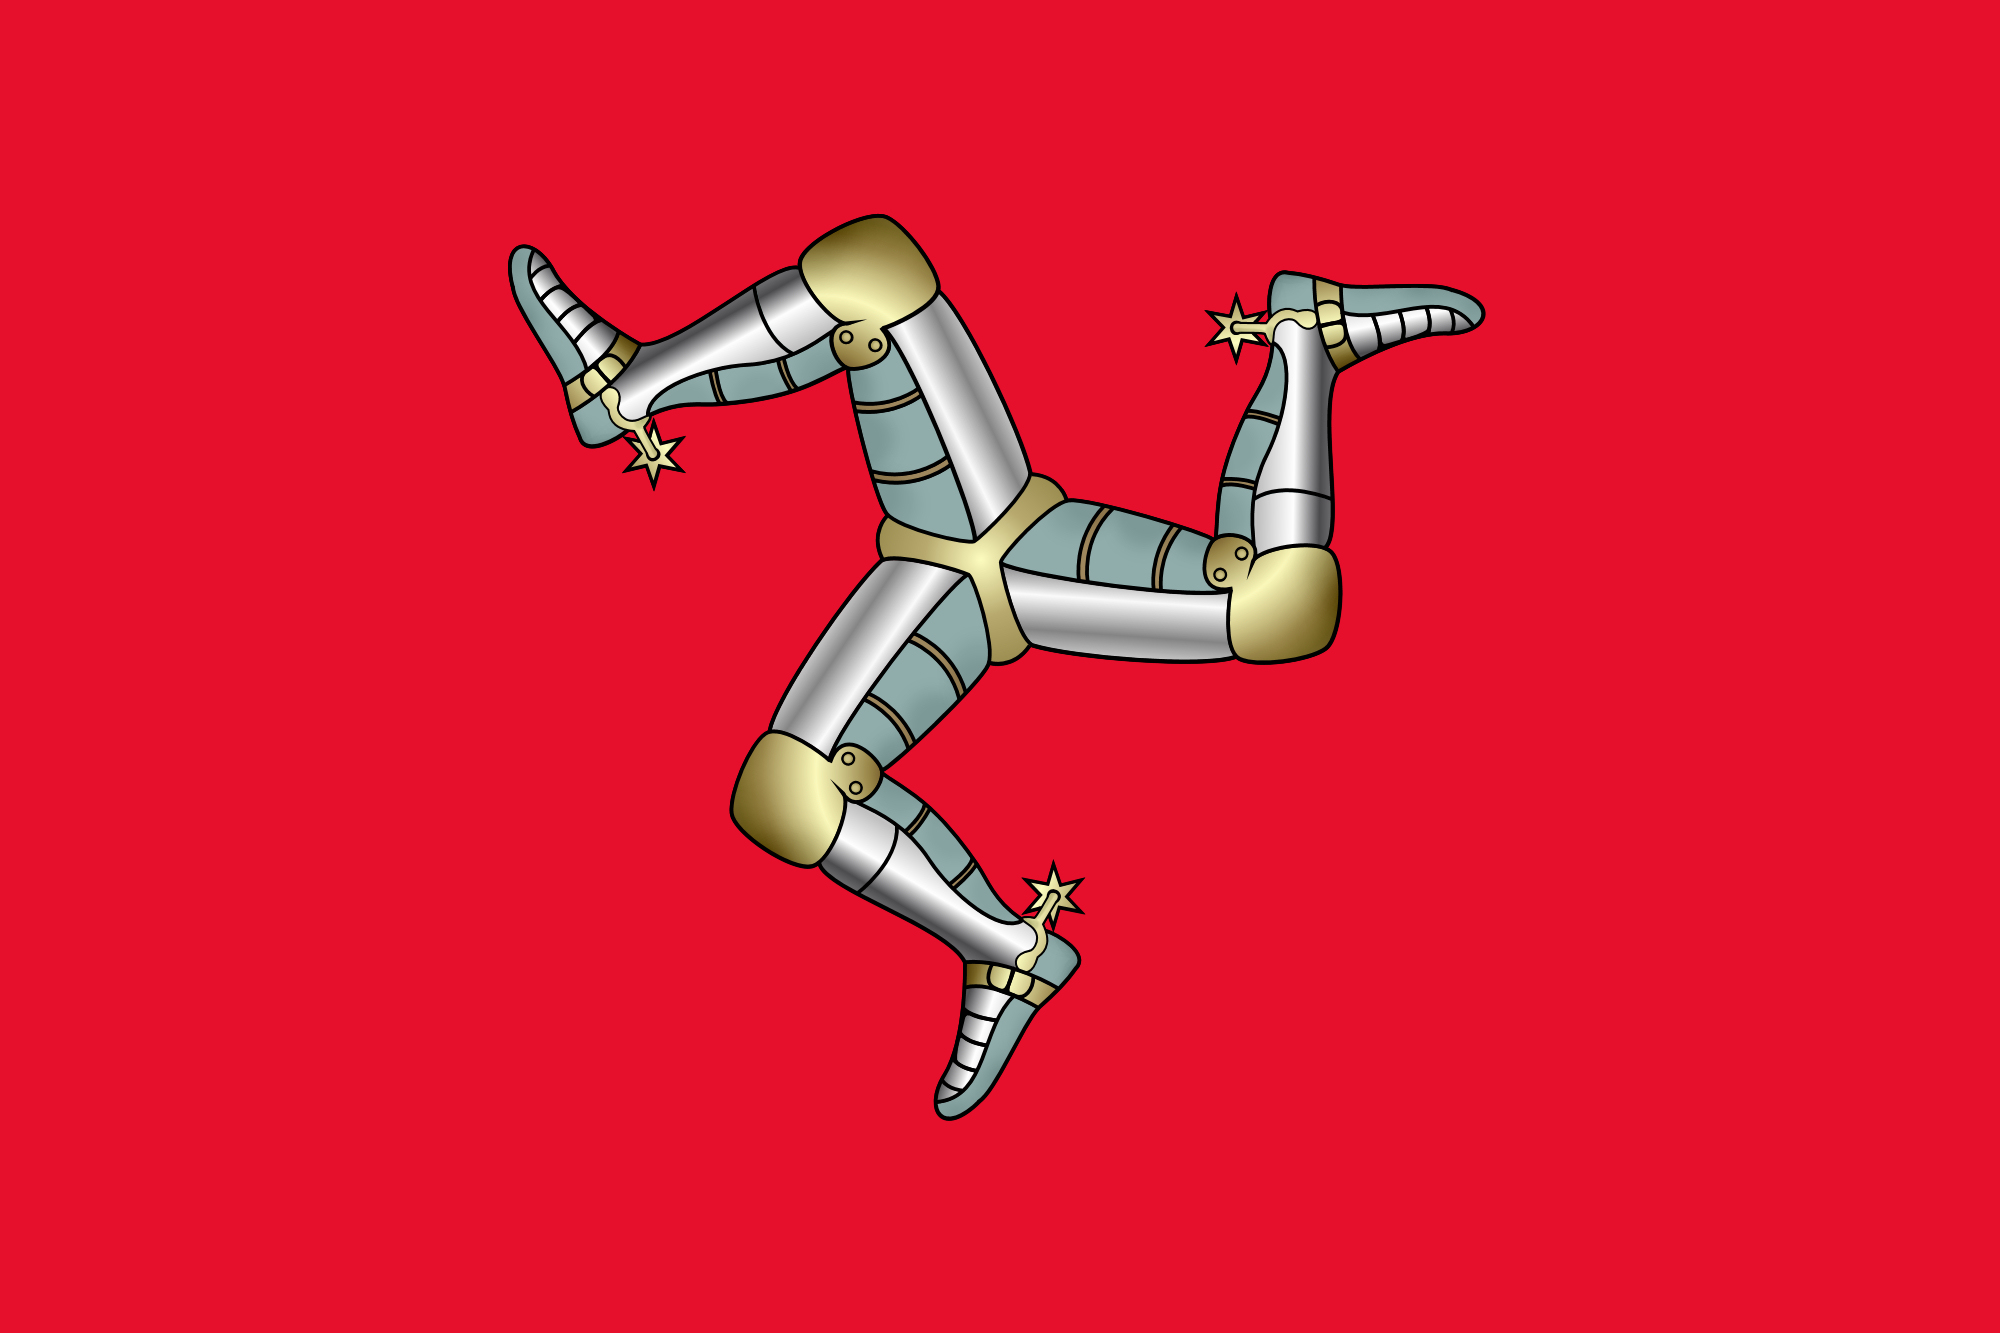 Isle of man flag clipart image black and white download Isle Of Man Flag | printable flags image black and white download